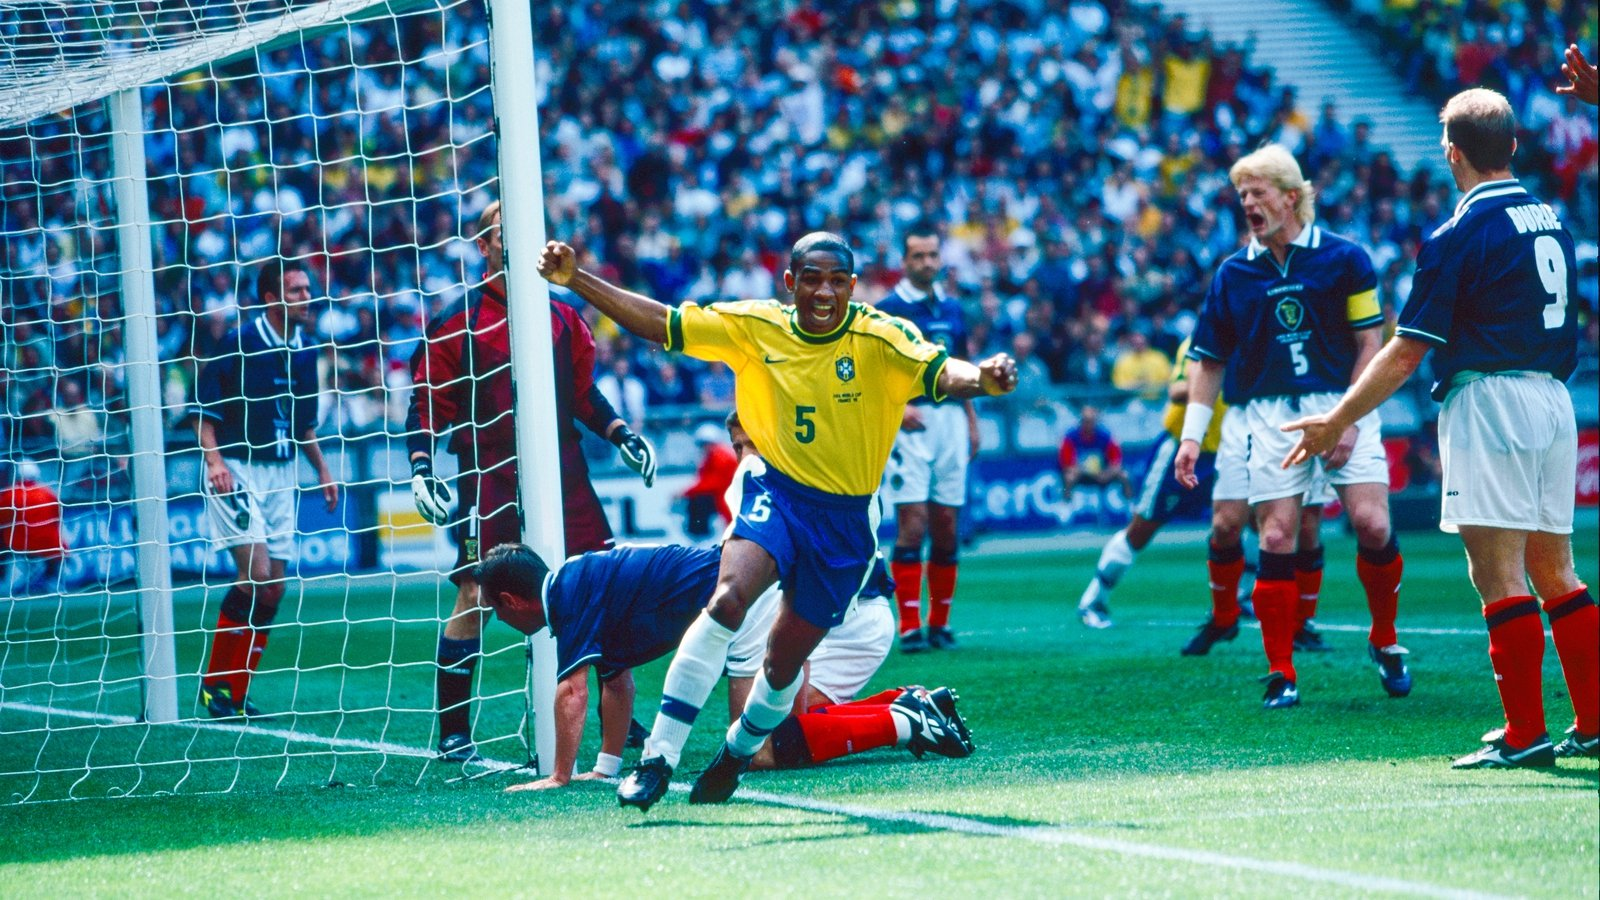 Image - Cesar Sampaio scores the first goal of the 1998 World Cup against Scotland